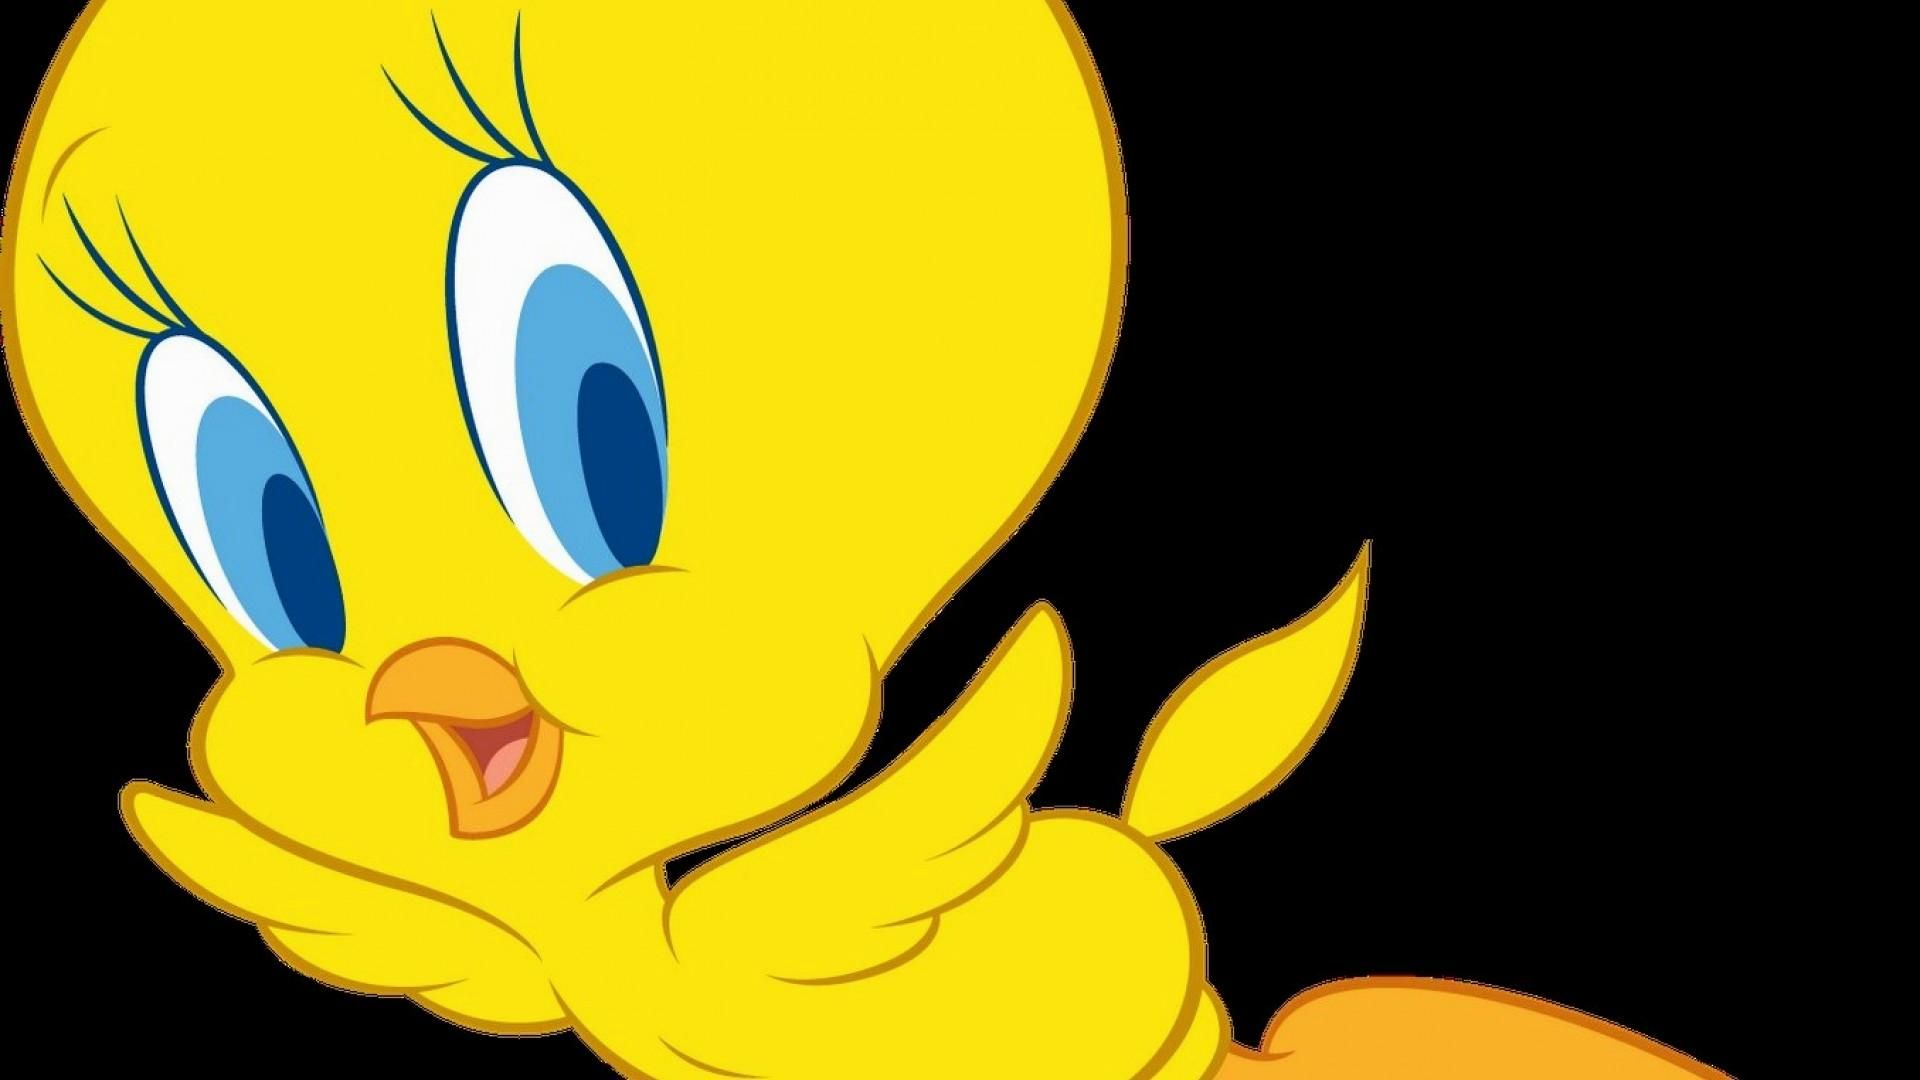 tweety hd images get free top quality tweety hd images for your desktop pc background